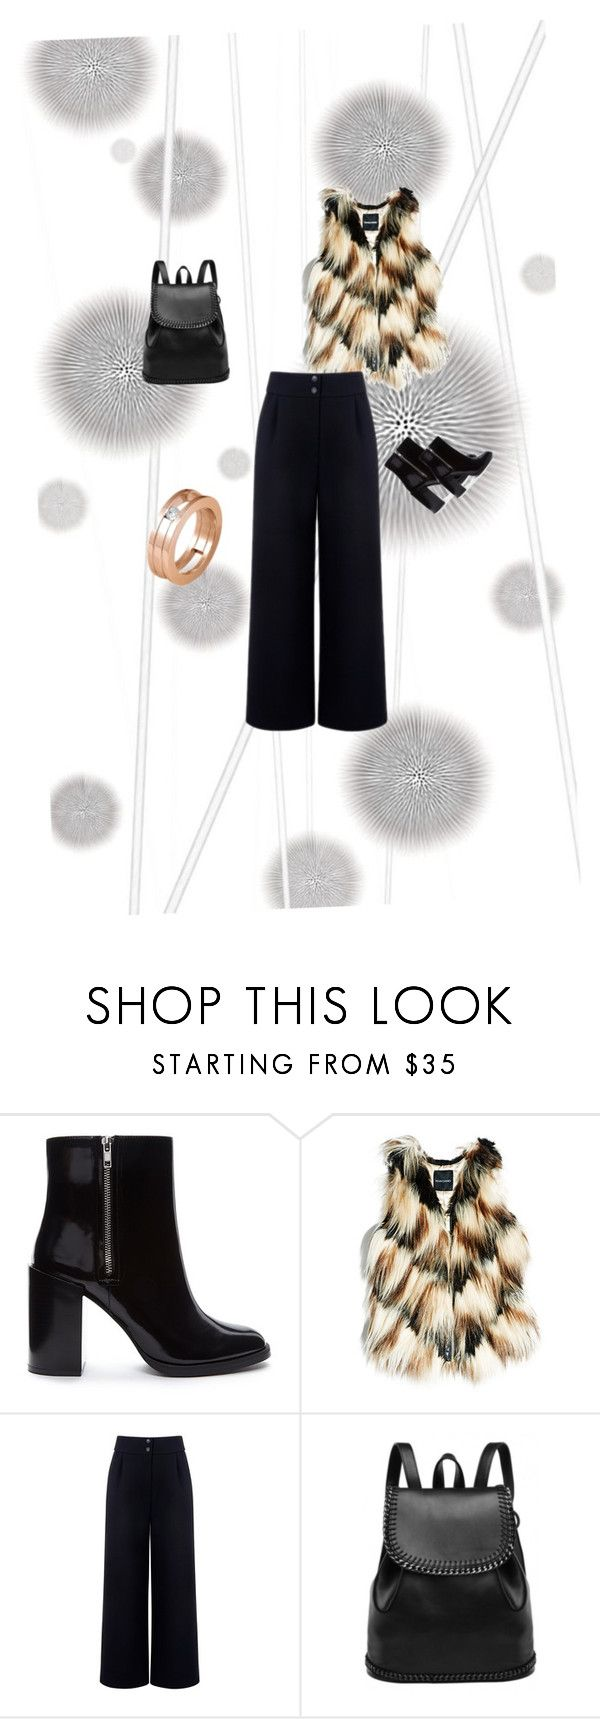 """""""Untitled #1"""" by xepolo-com on Polyvore featuring Komar, Forever 21, GUESS by Marciano, Amaranta and Être Cécile"""